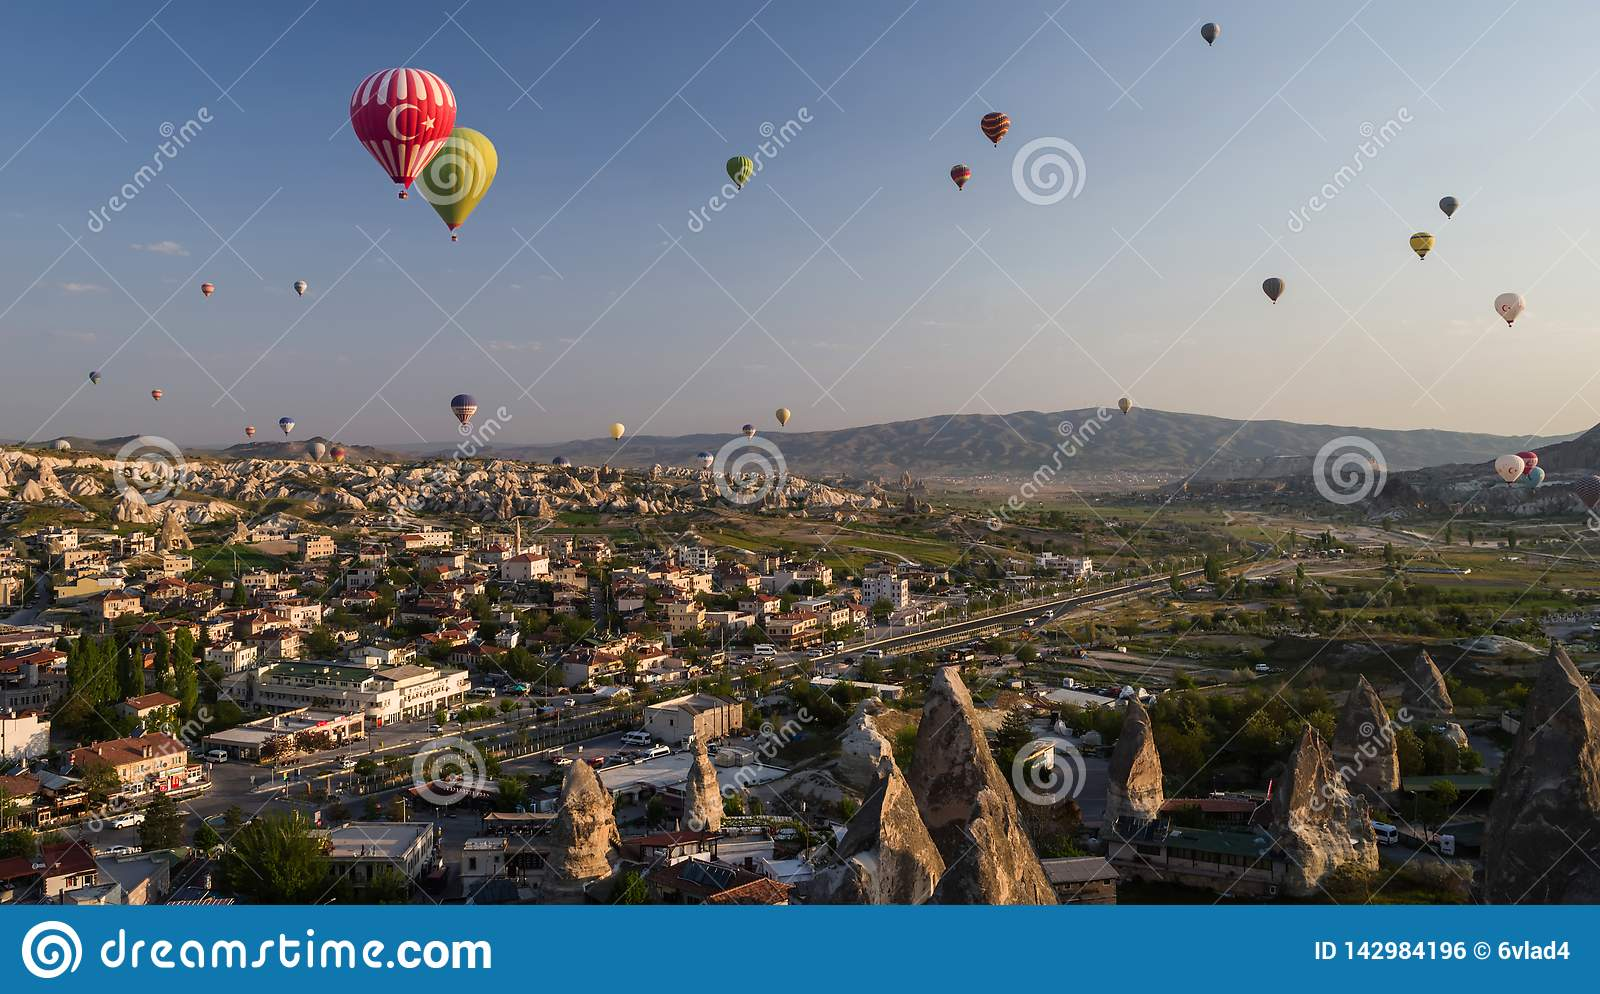 Hot air balloons flying over Goreme at sunrise with sandstone formations in the foreground